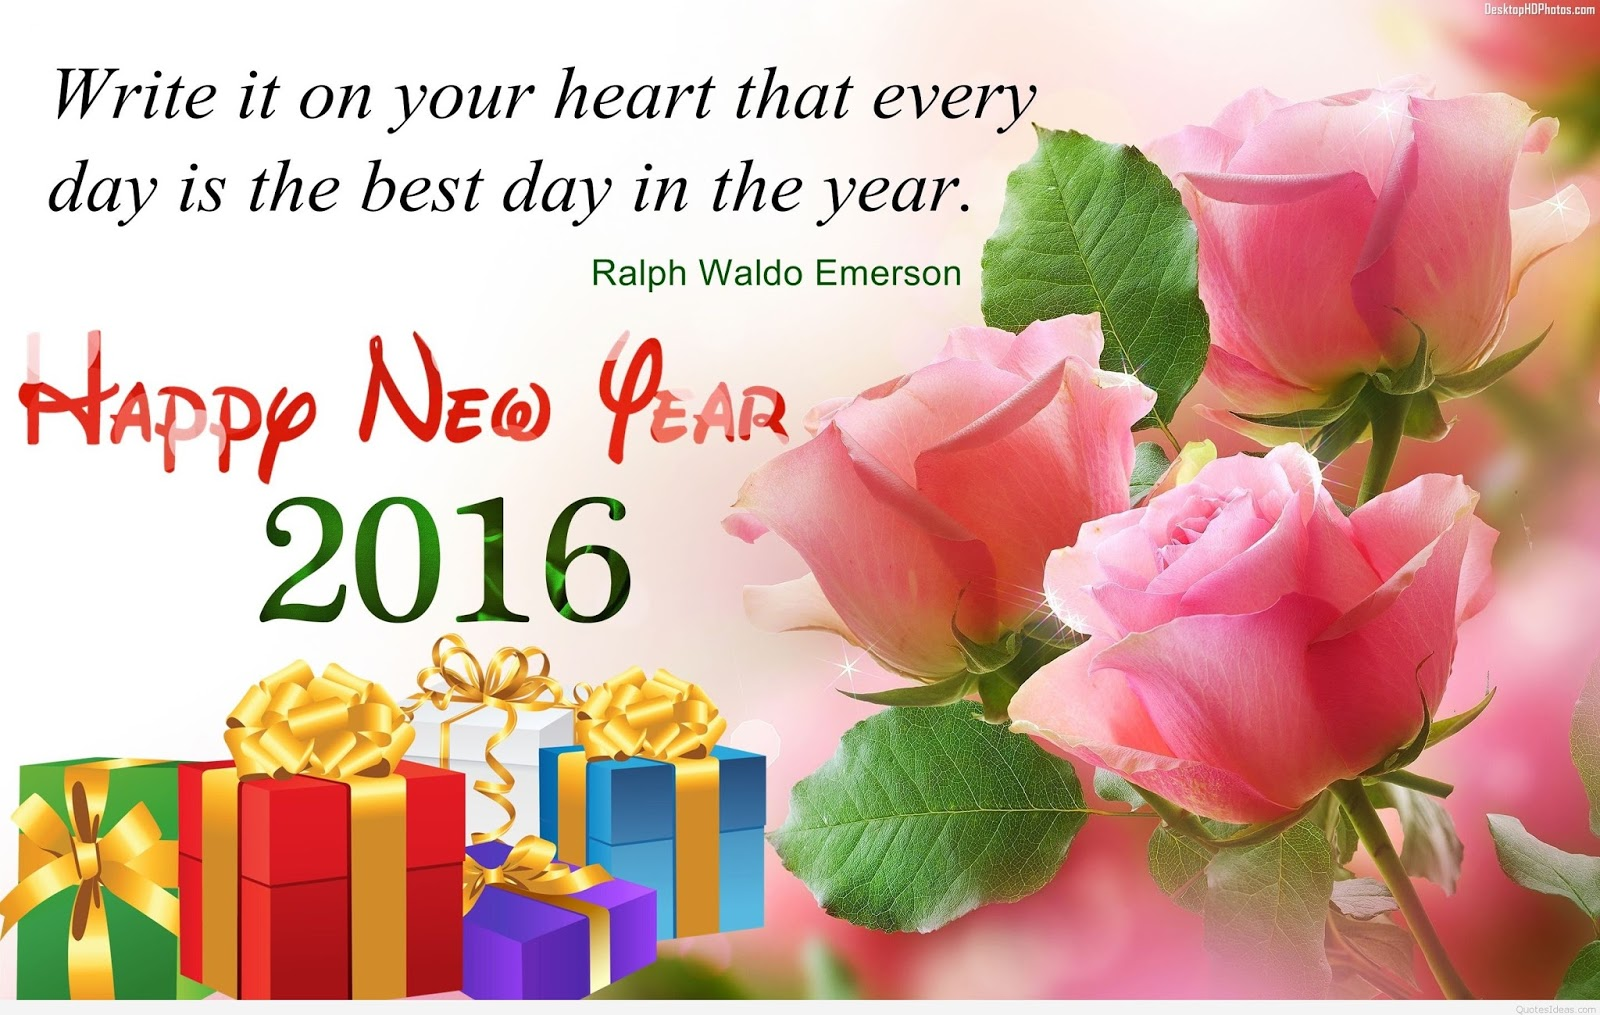 Download New Year 2016 Greeting Cards Happy New Year 2016 Hd Wallpaper